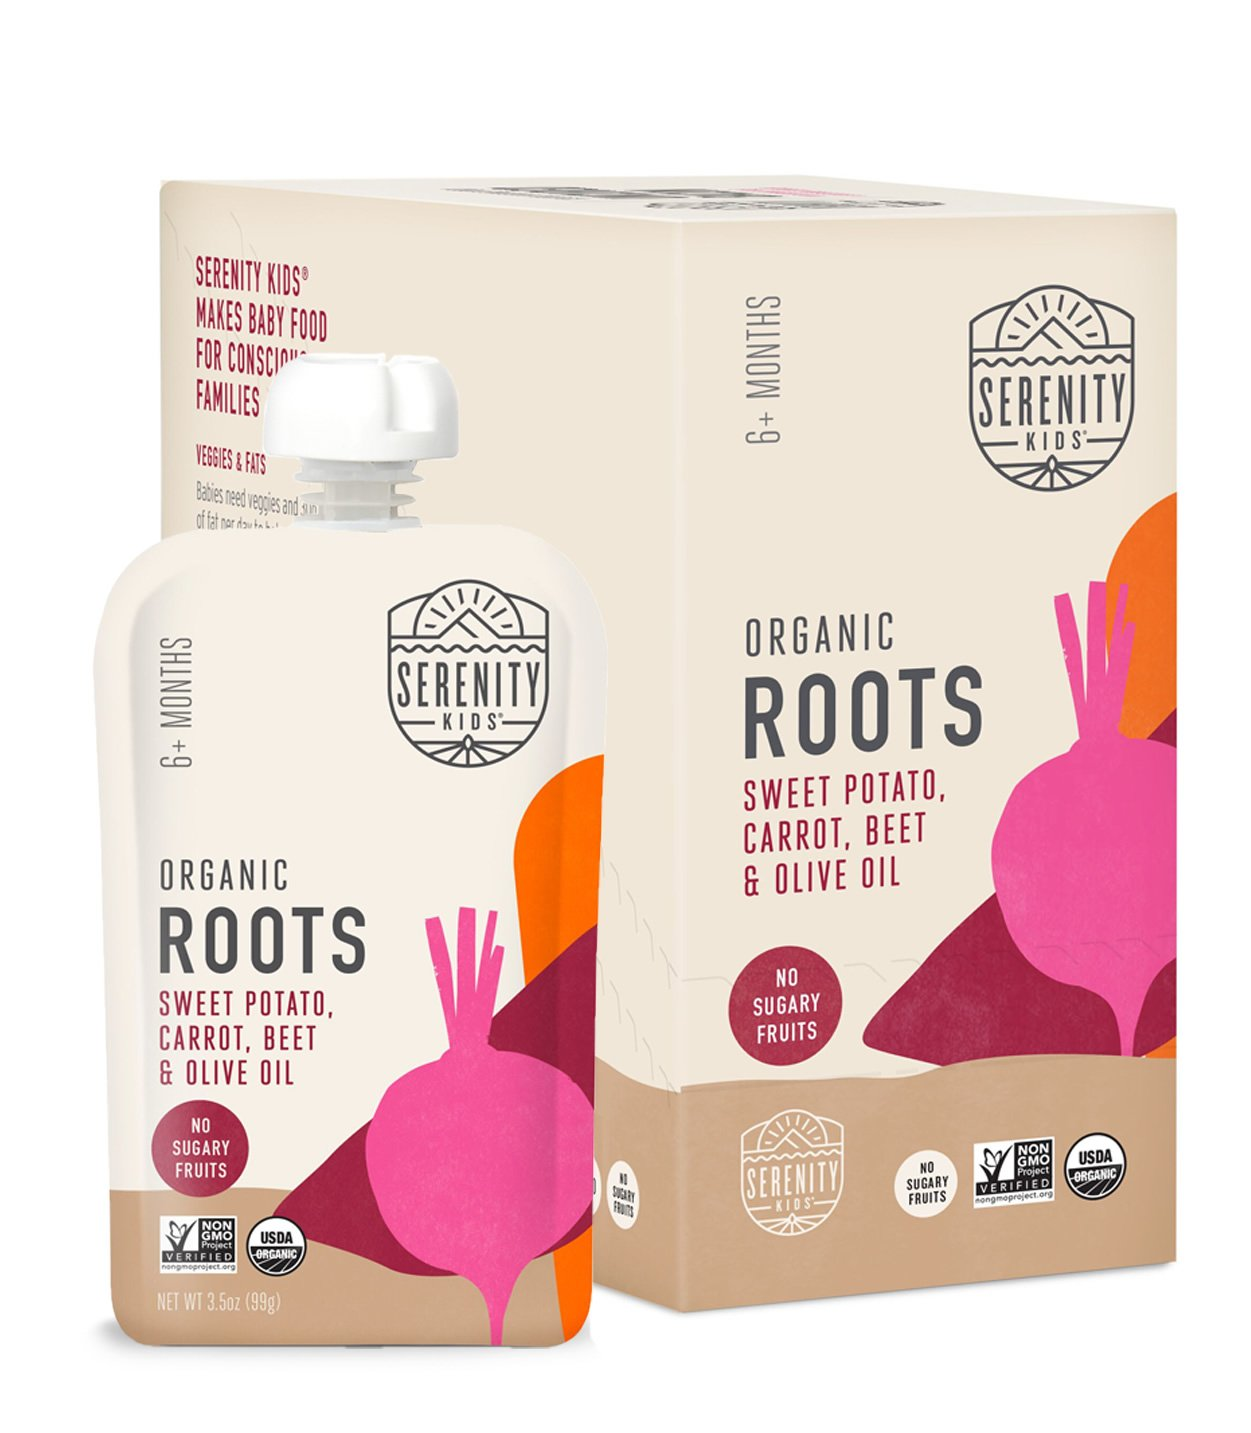 Serenity Kids Organic Roots Baby Food